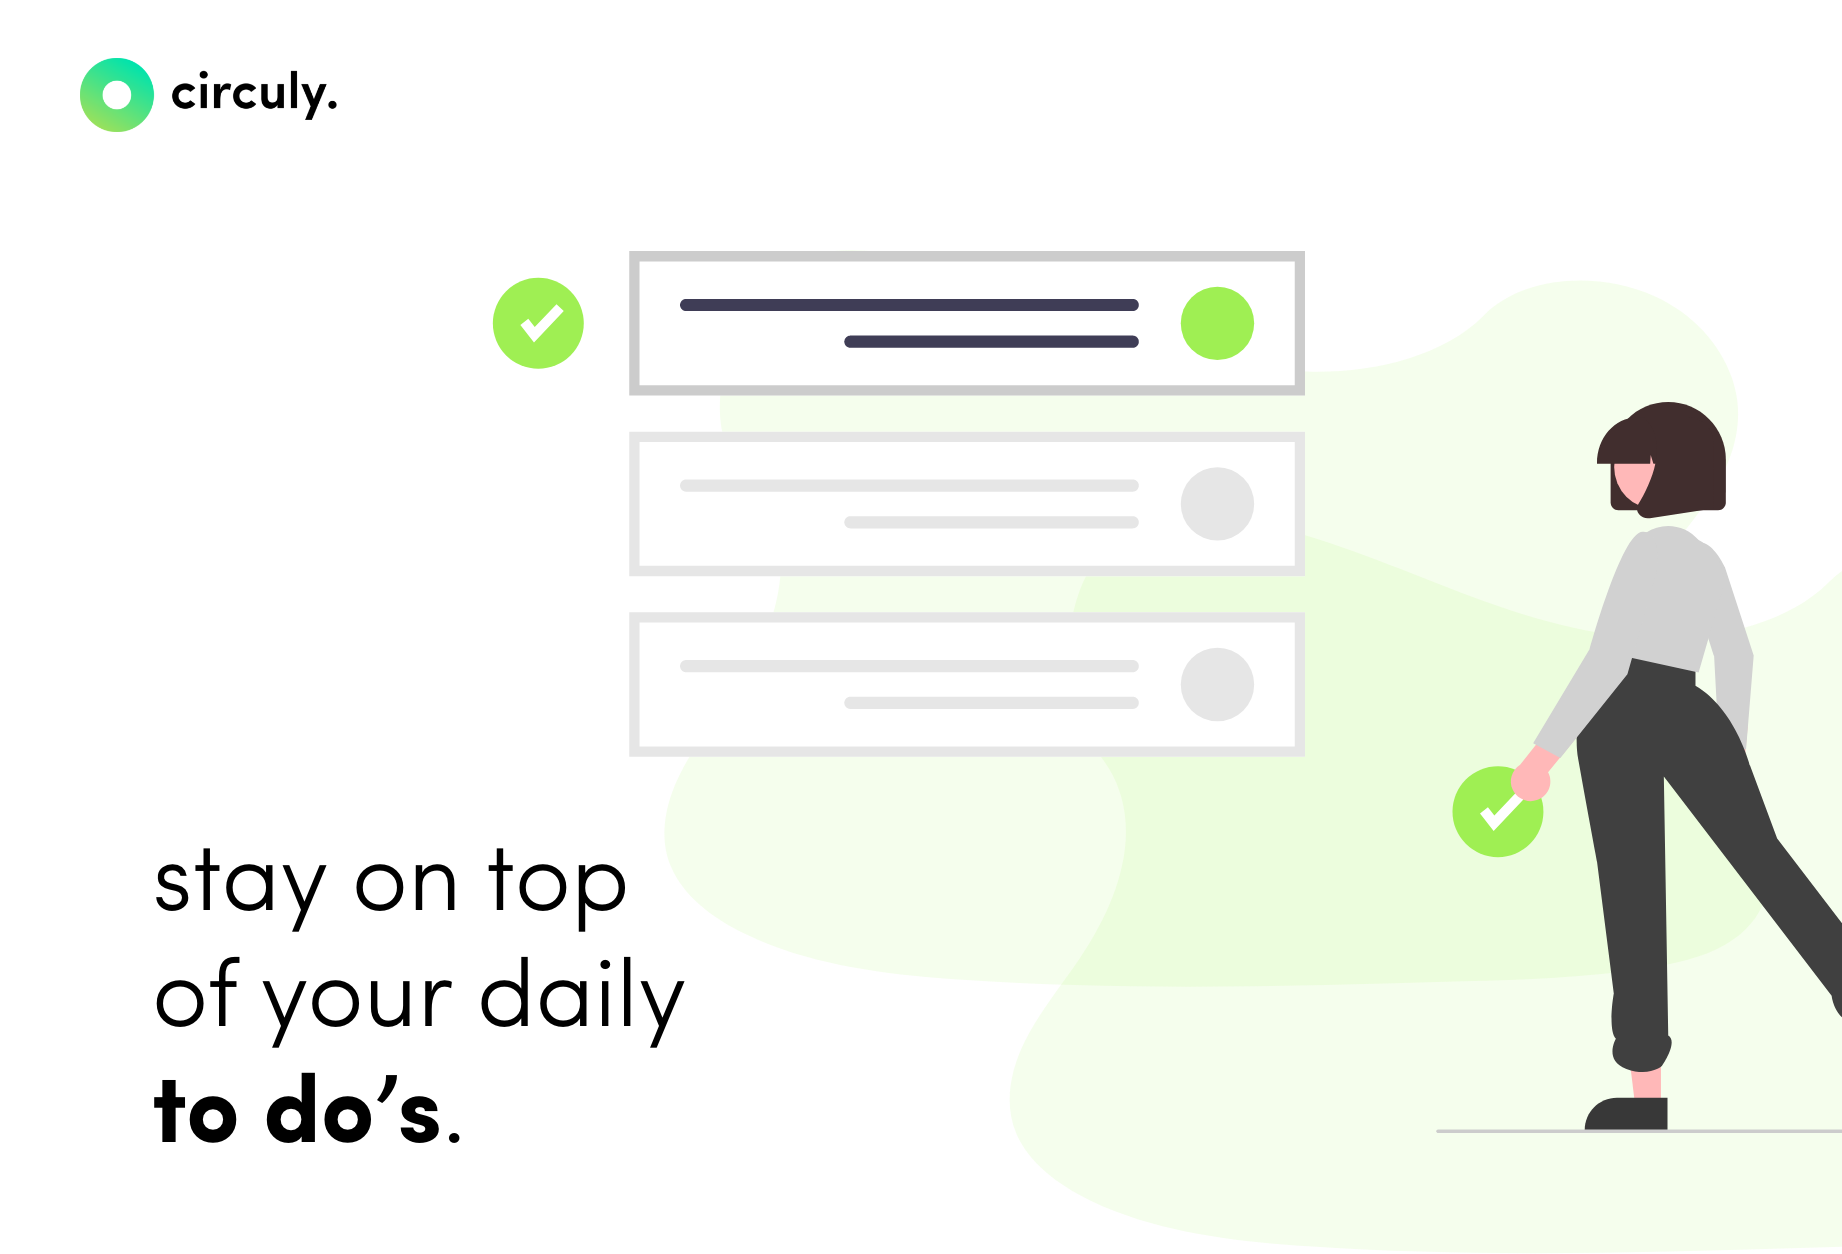 Feature Release: To-Do Page